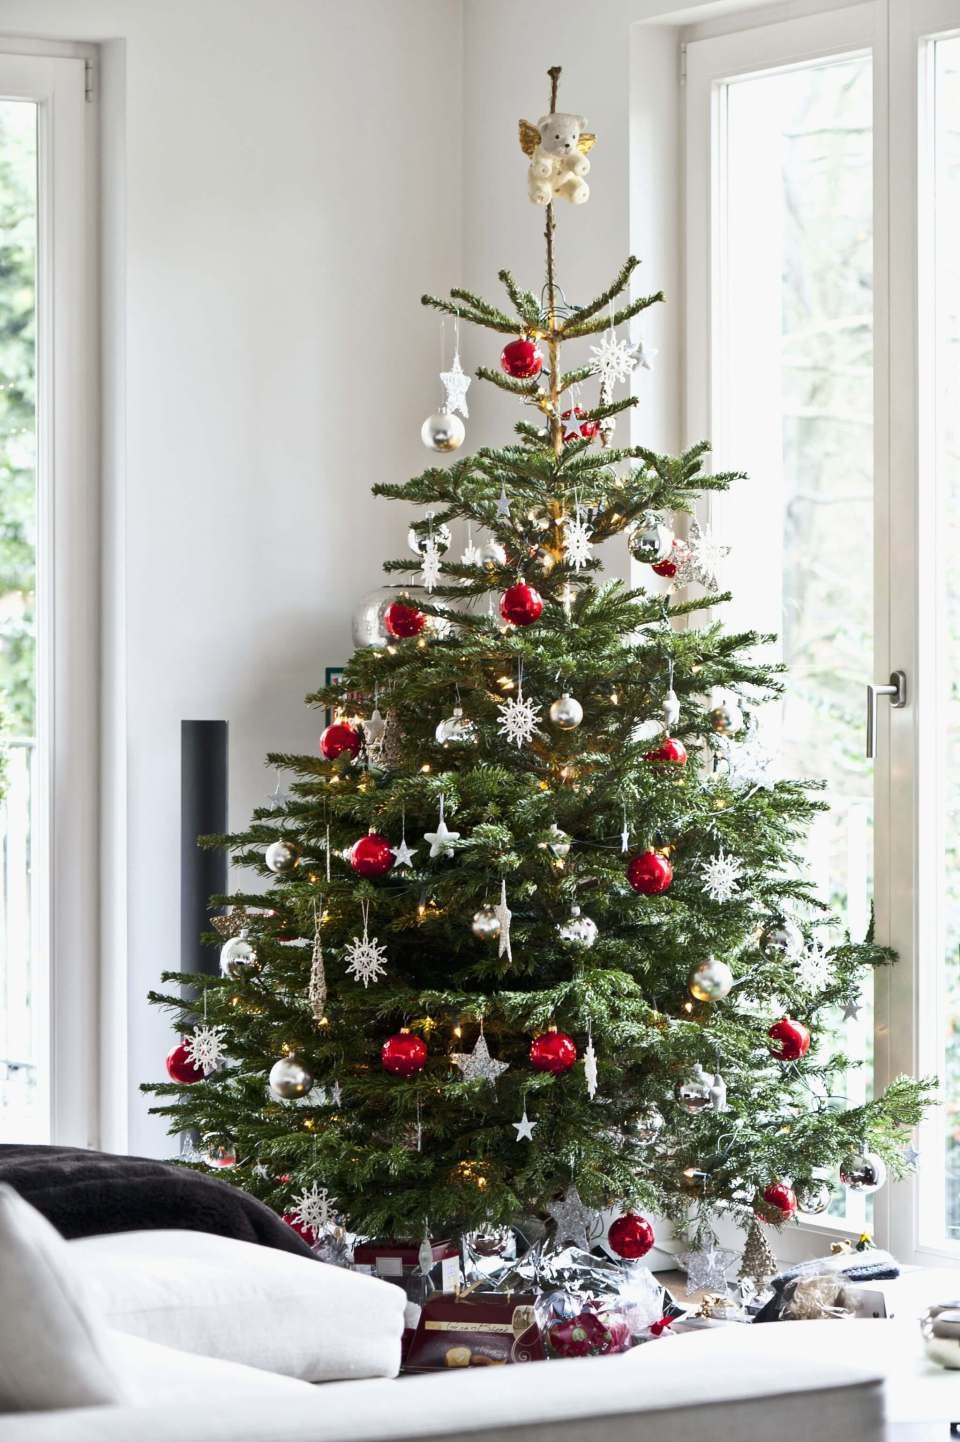 Decorating Your Holiday Tree Like a Pro   Best Way to Decorate Christmas Trees on a Budget: Inexpensive or Free & Easy Holiday Ornaments & Decorations